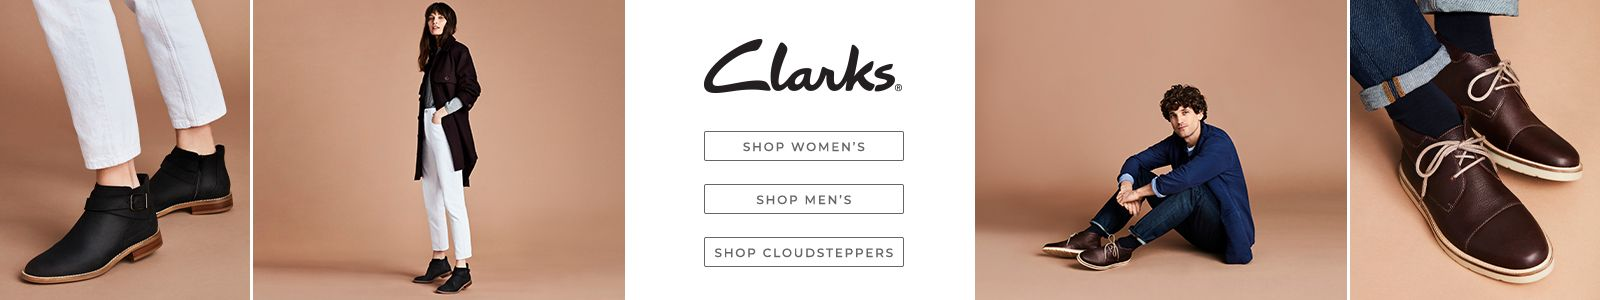 Clarks, Shop Women's, Shop Men's, Shop Cloudsteppers